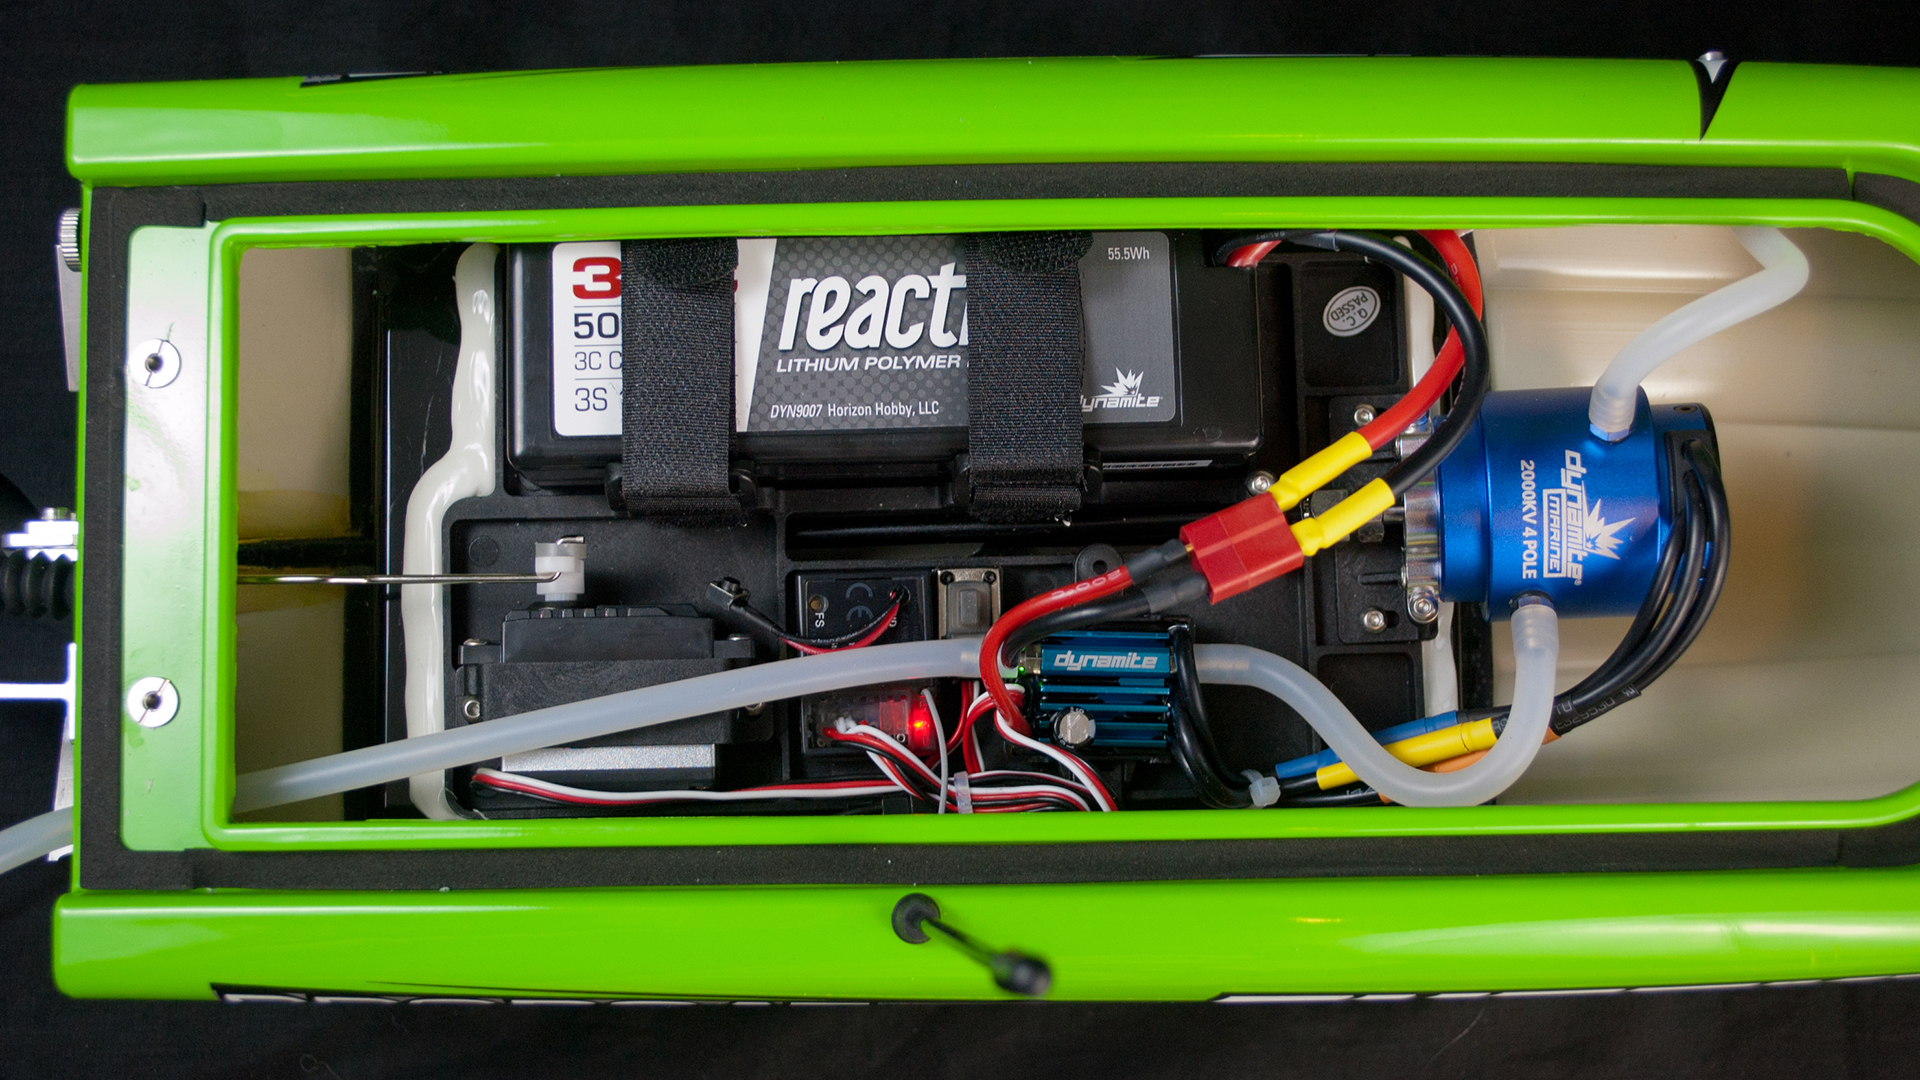 How To Get Into Htesting The Pro Boat Shockwave 26 Tested Wiring A Comes Completely Assembled And Requires Only Lipo Battery Charger This View Illustrates Layout Of Internal Components